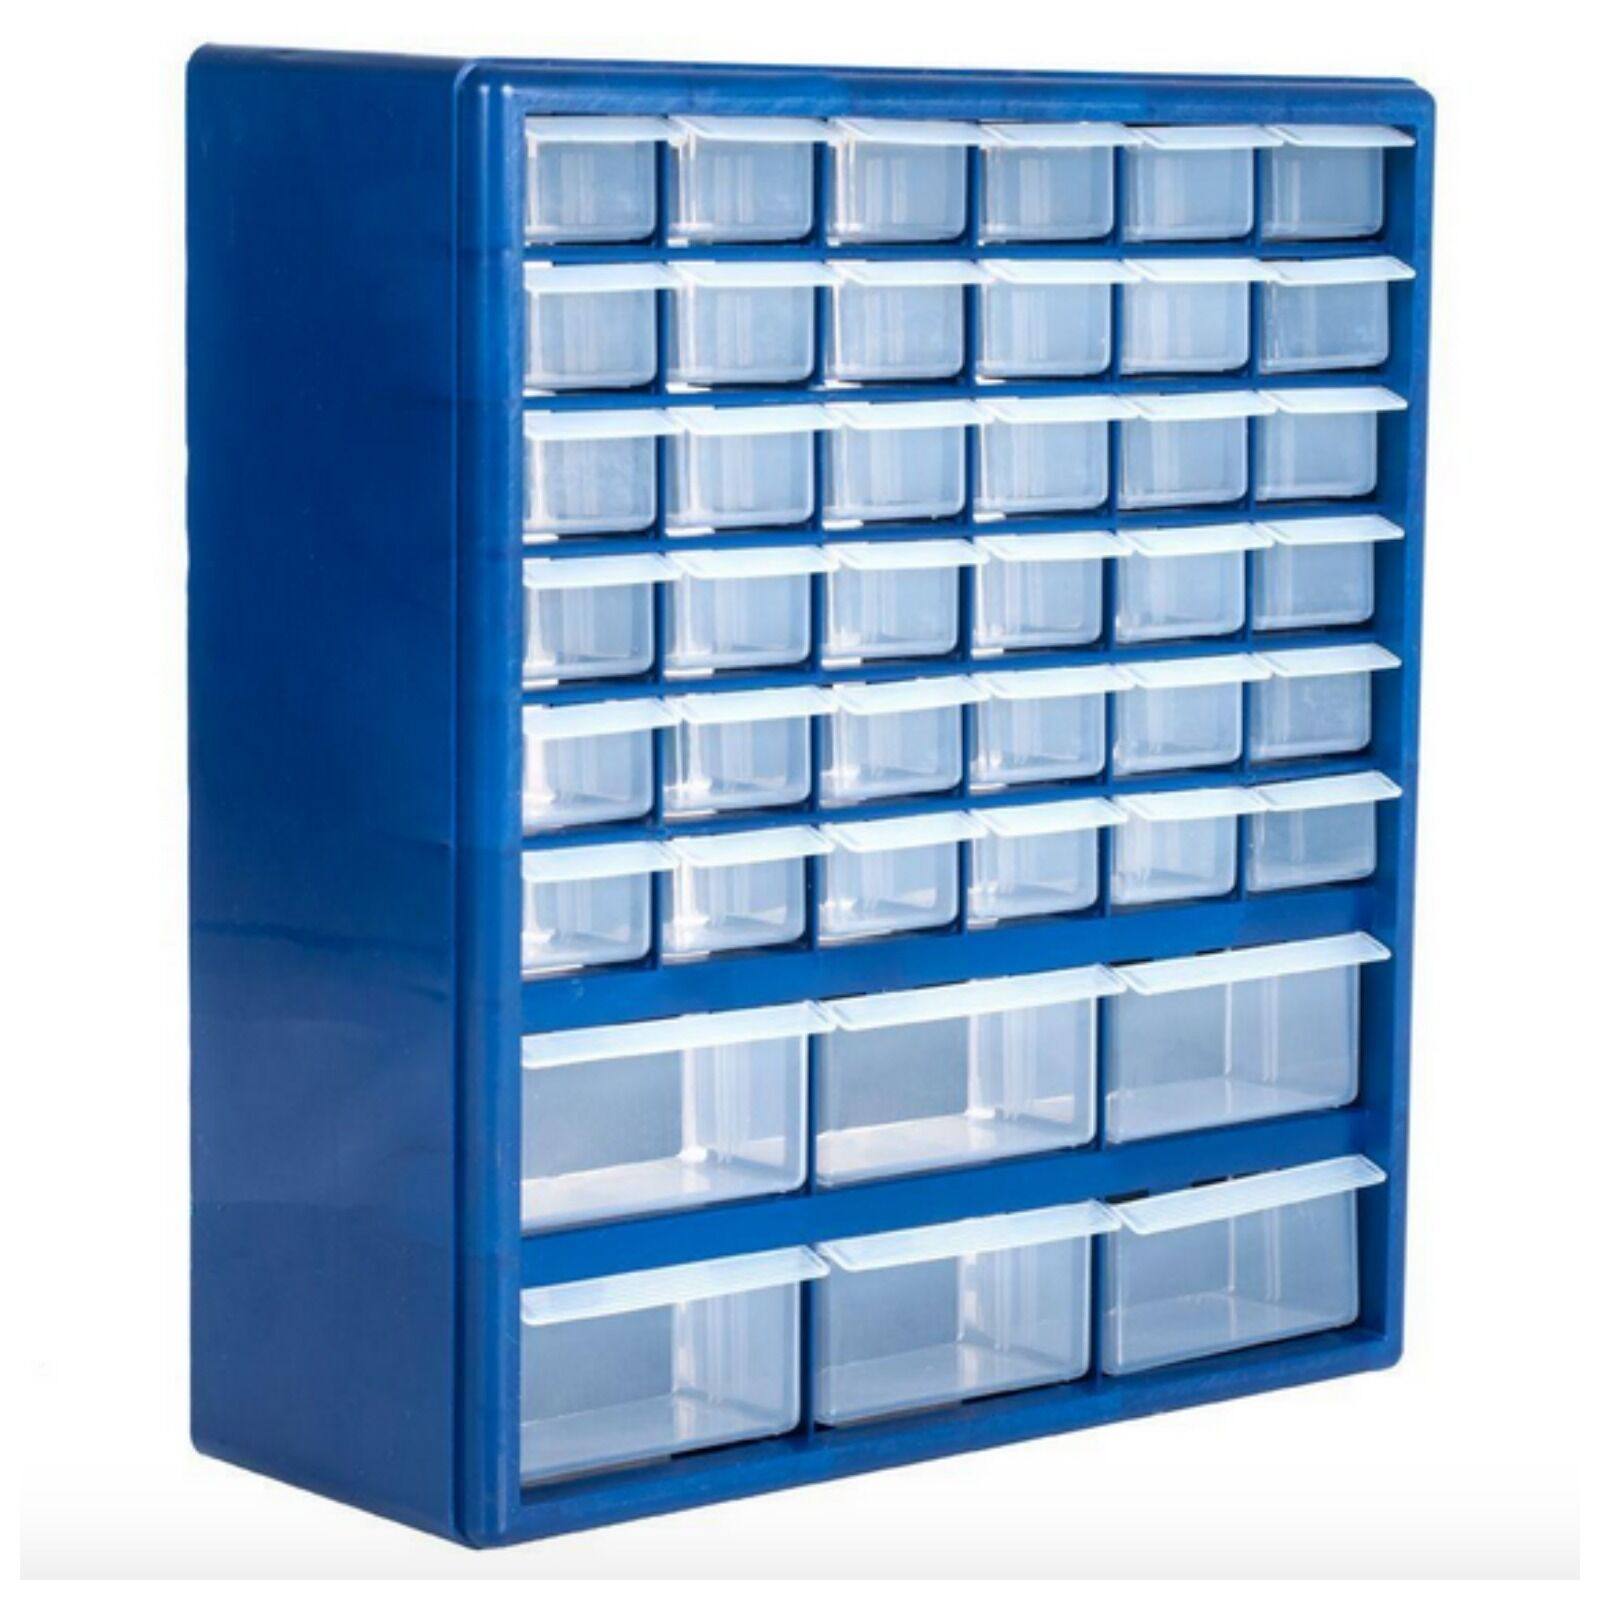 Compartment Storage Box Small Parts Drawer Cabinet Organizer 42 Bins Drawers  New 1 Of 12Only 1 Available Compartment Storage Box Small Parts Drawer  Cabinet ...